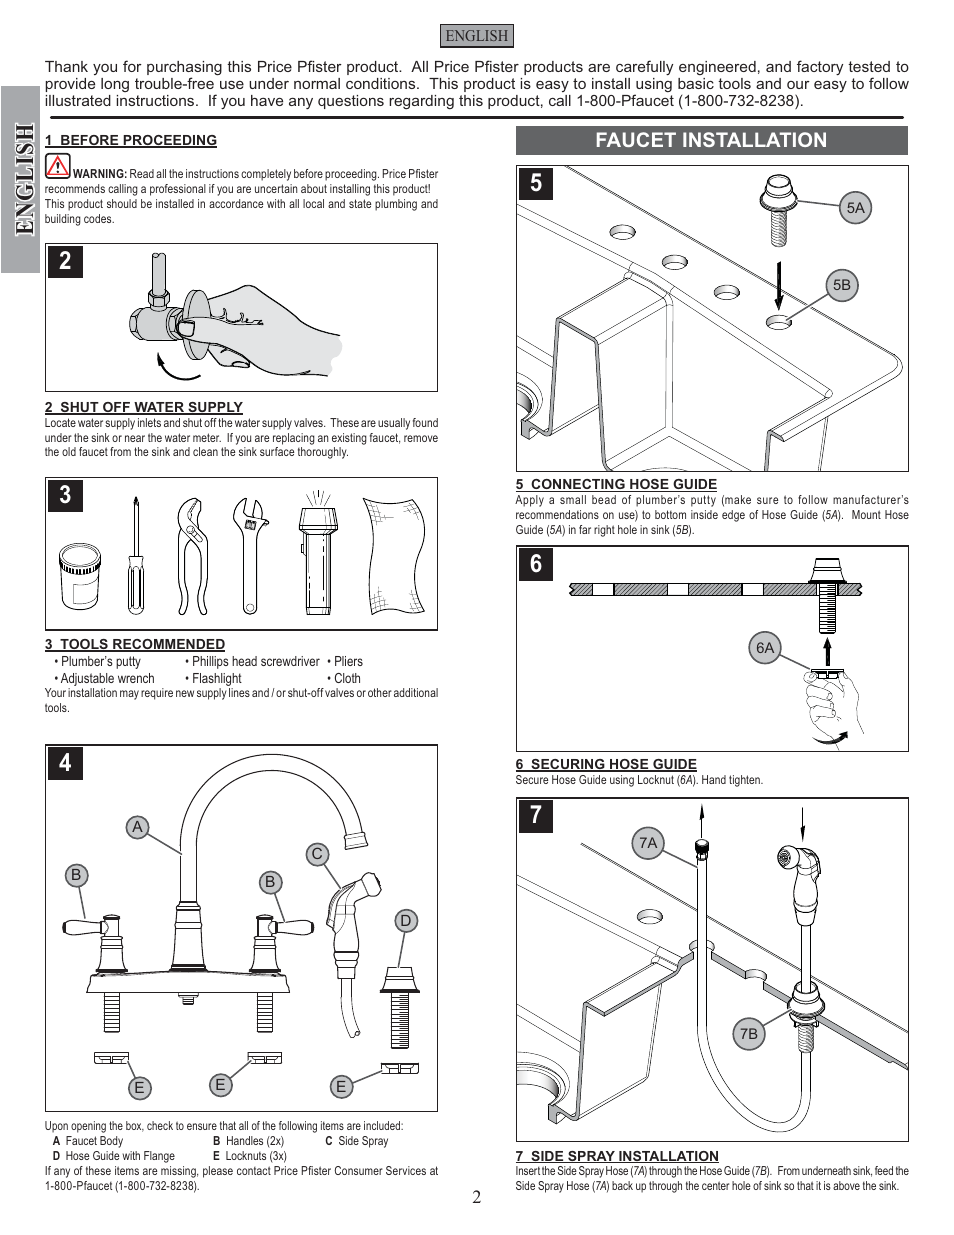 English Faucet Installation Pfister F 036 Cl4s User Manual Page